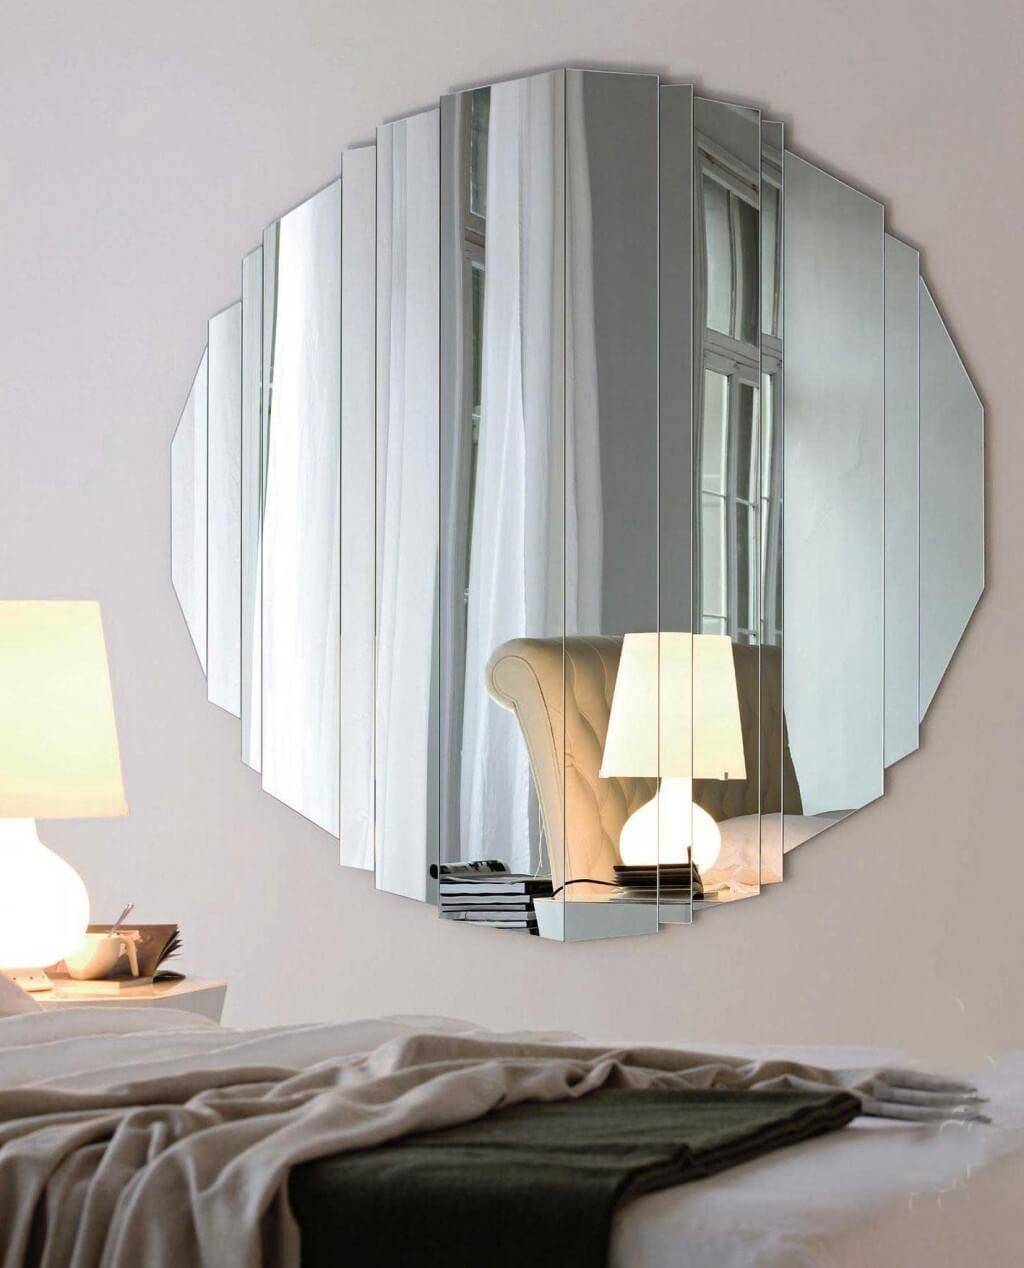 Image of: Large Round Mirror Wall Decor